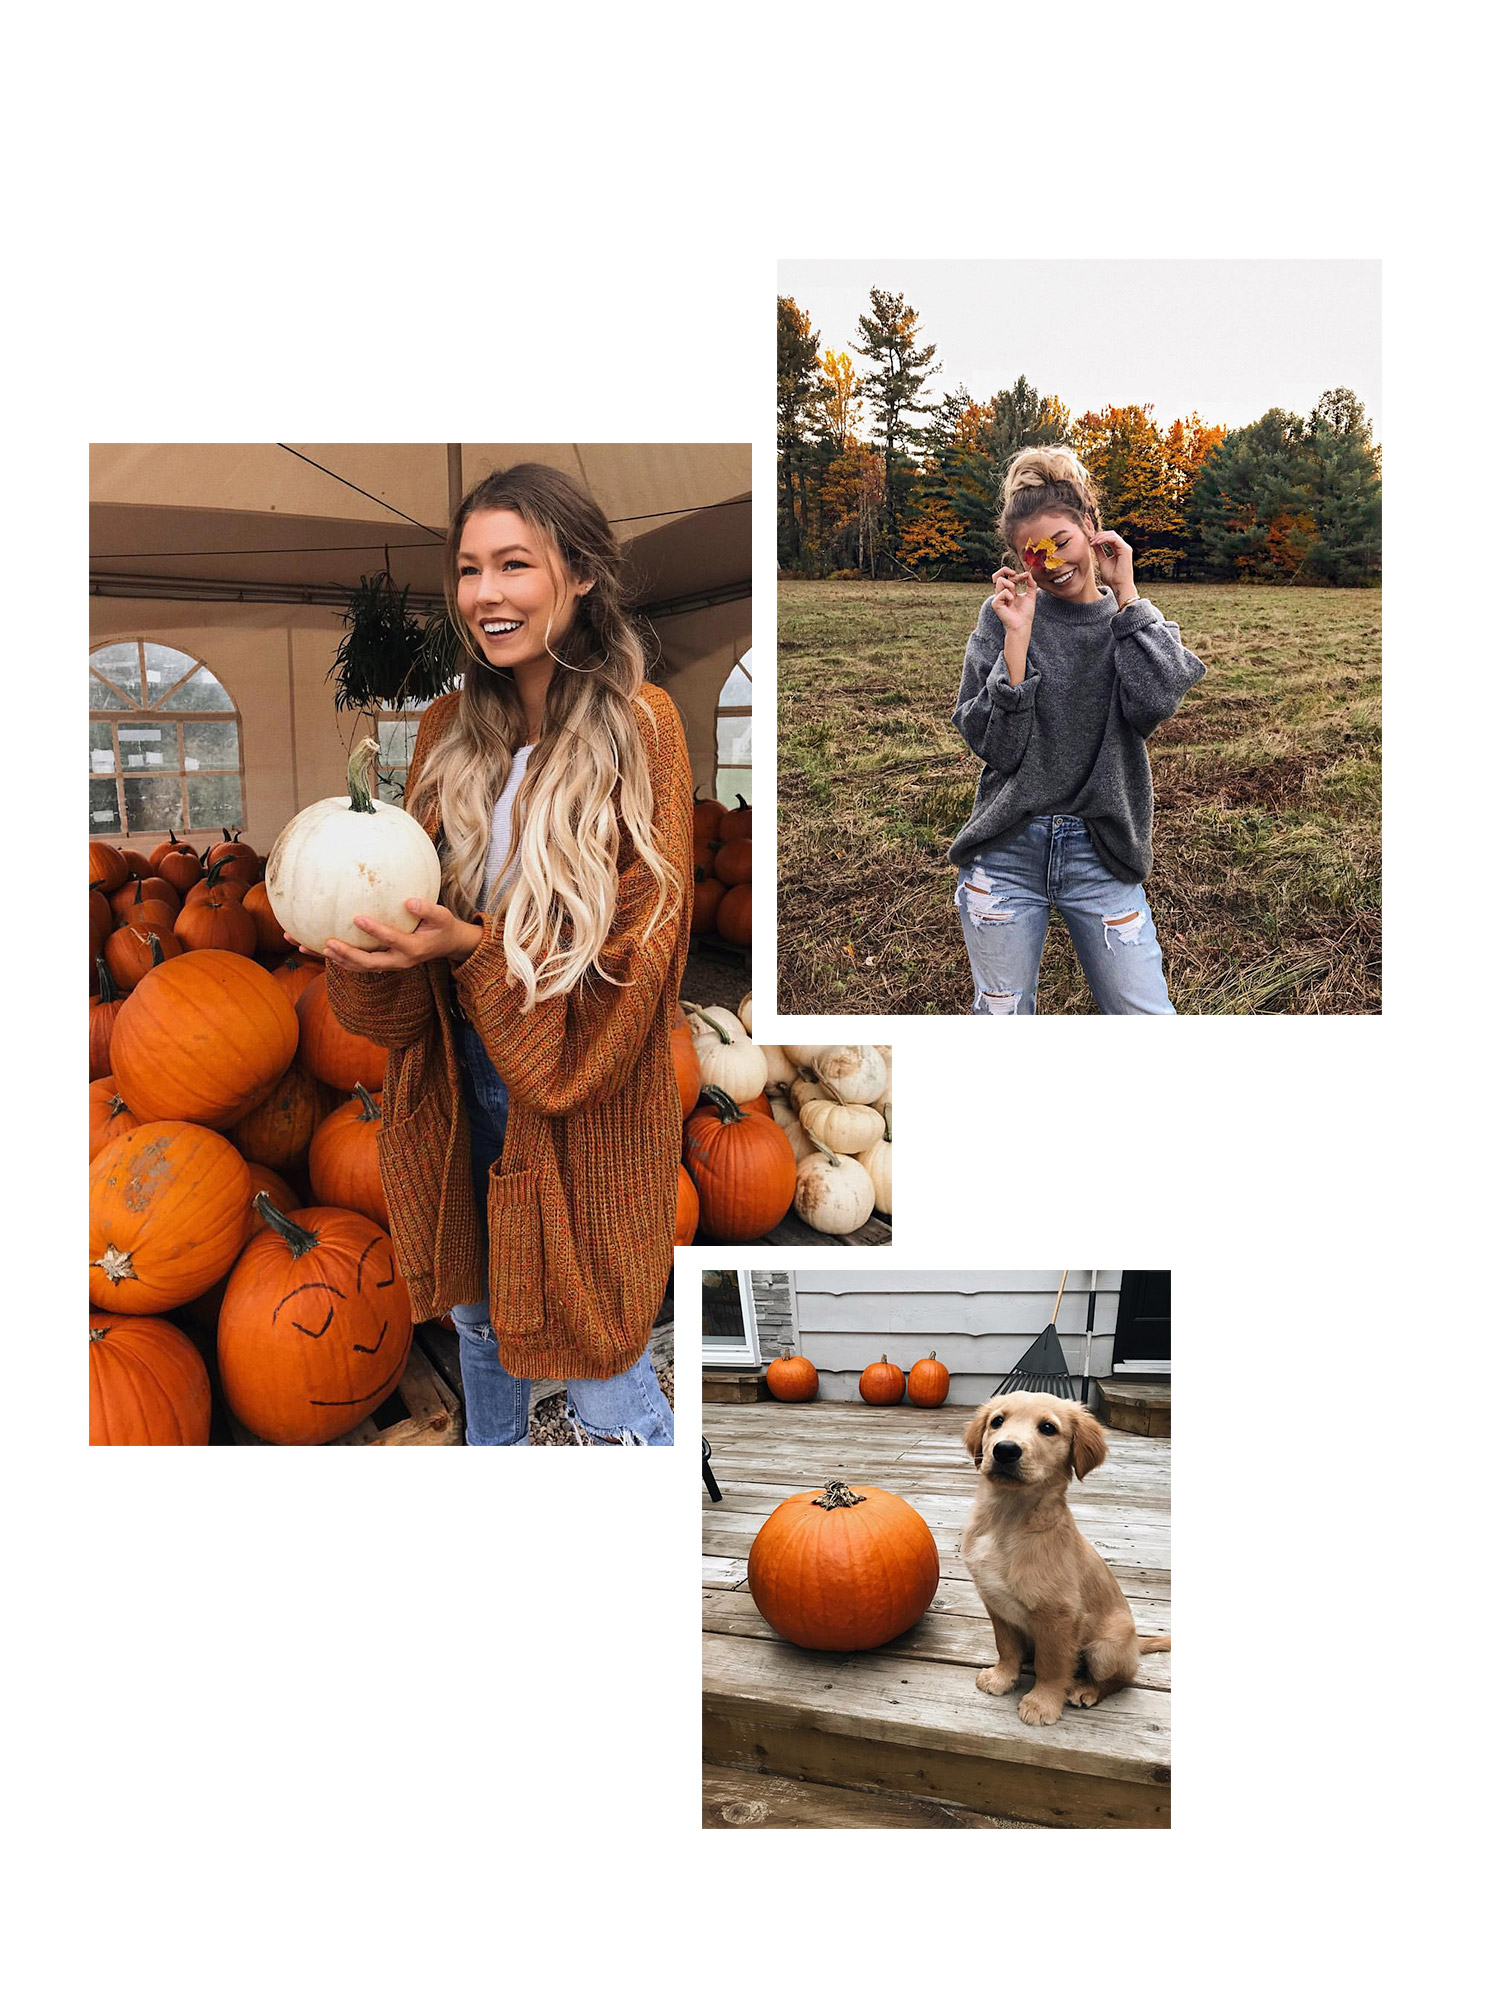 3. alex centomo - Youtuber and Instagram influencer Alex Centomo lives in Montreal, Canada and captures beautiful autumnal pictures with her cute golden retriever Boo. Not only do her photos have a great autumnal 'feeling', but she also has so many amazing outfit ideas to help you create the perfect a/w wardrobe. Follow here: alexcentomo